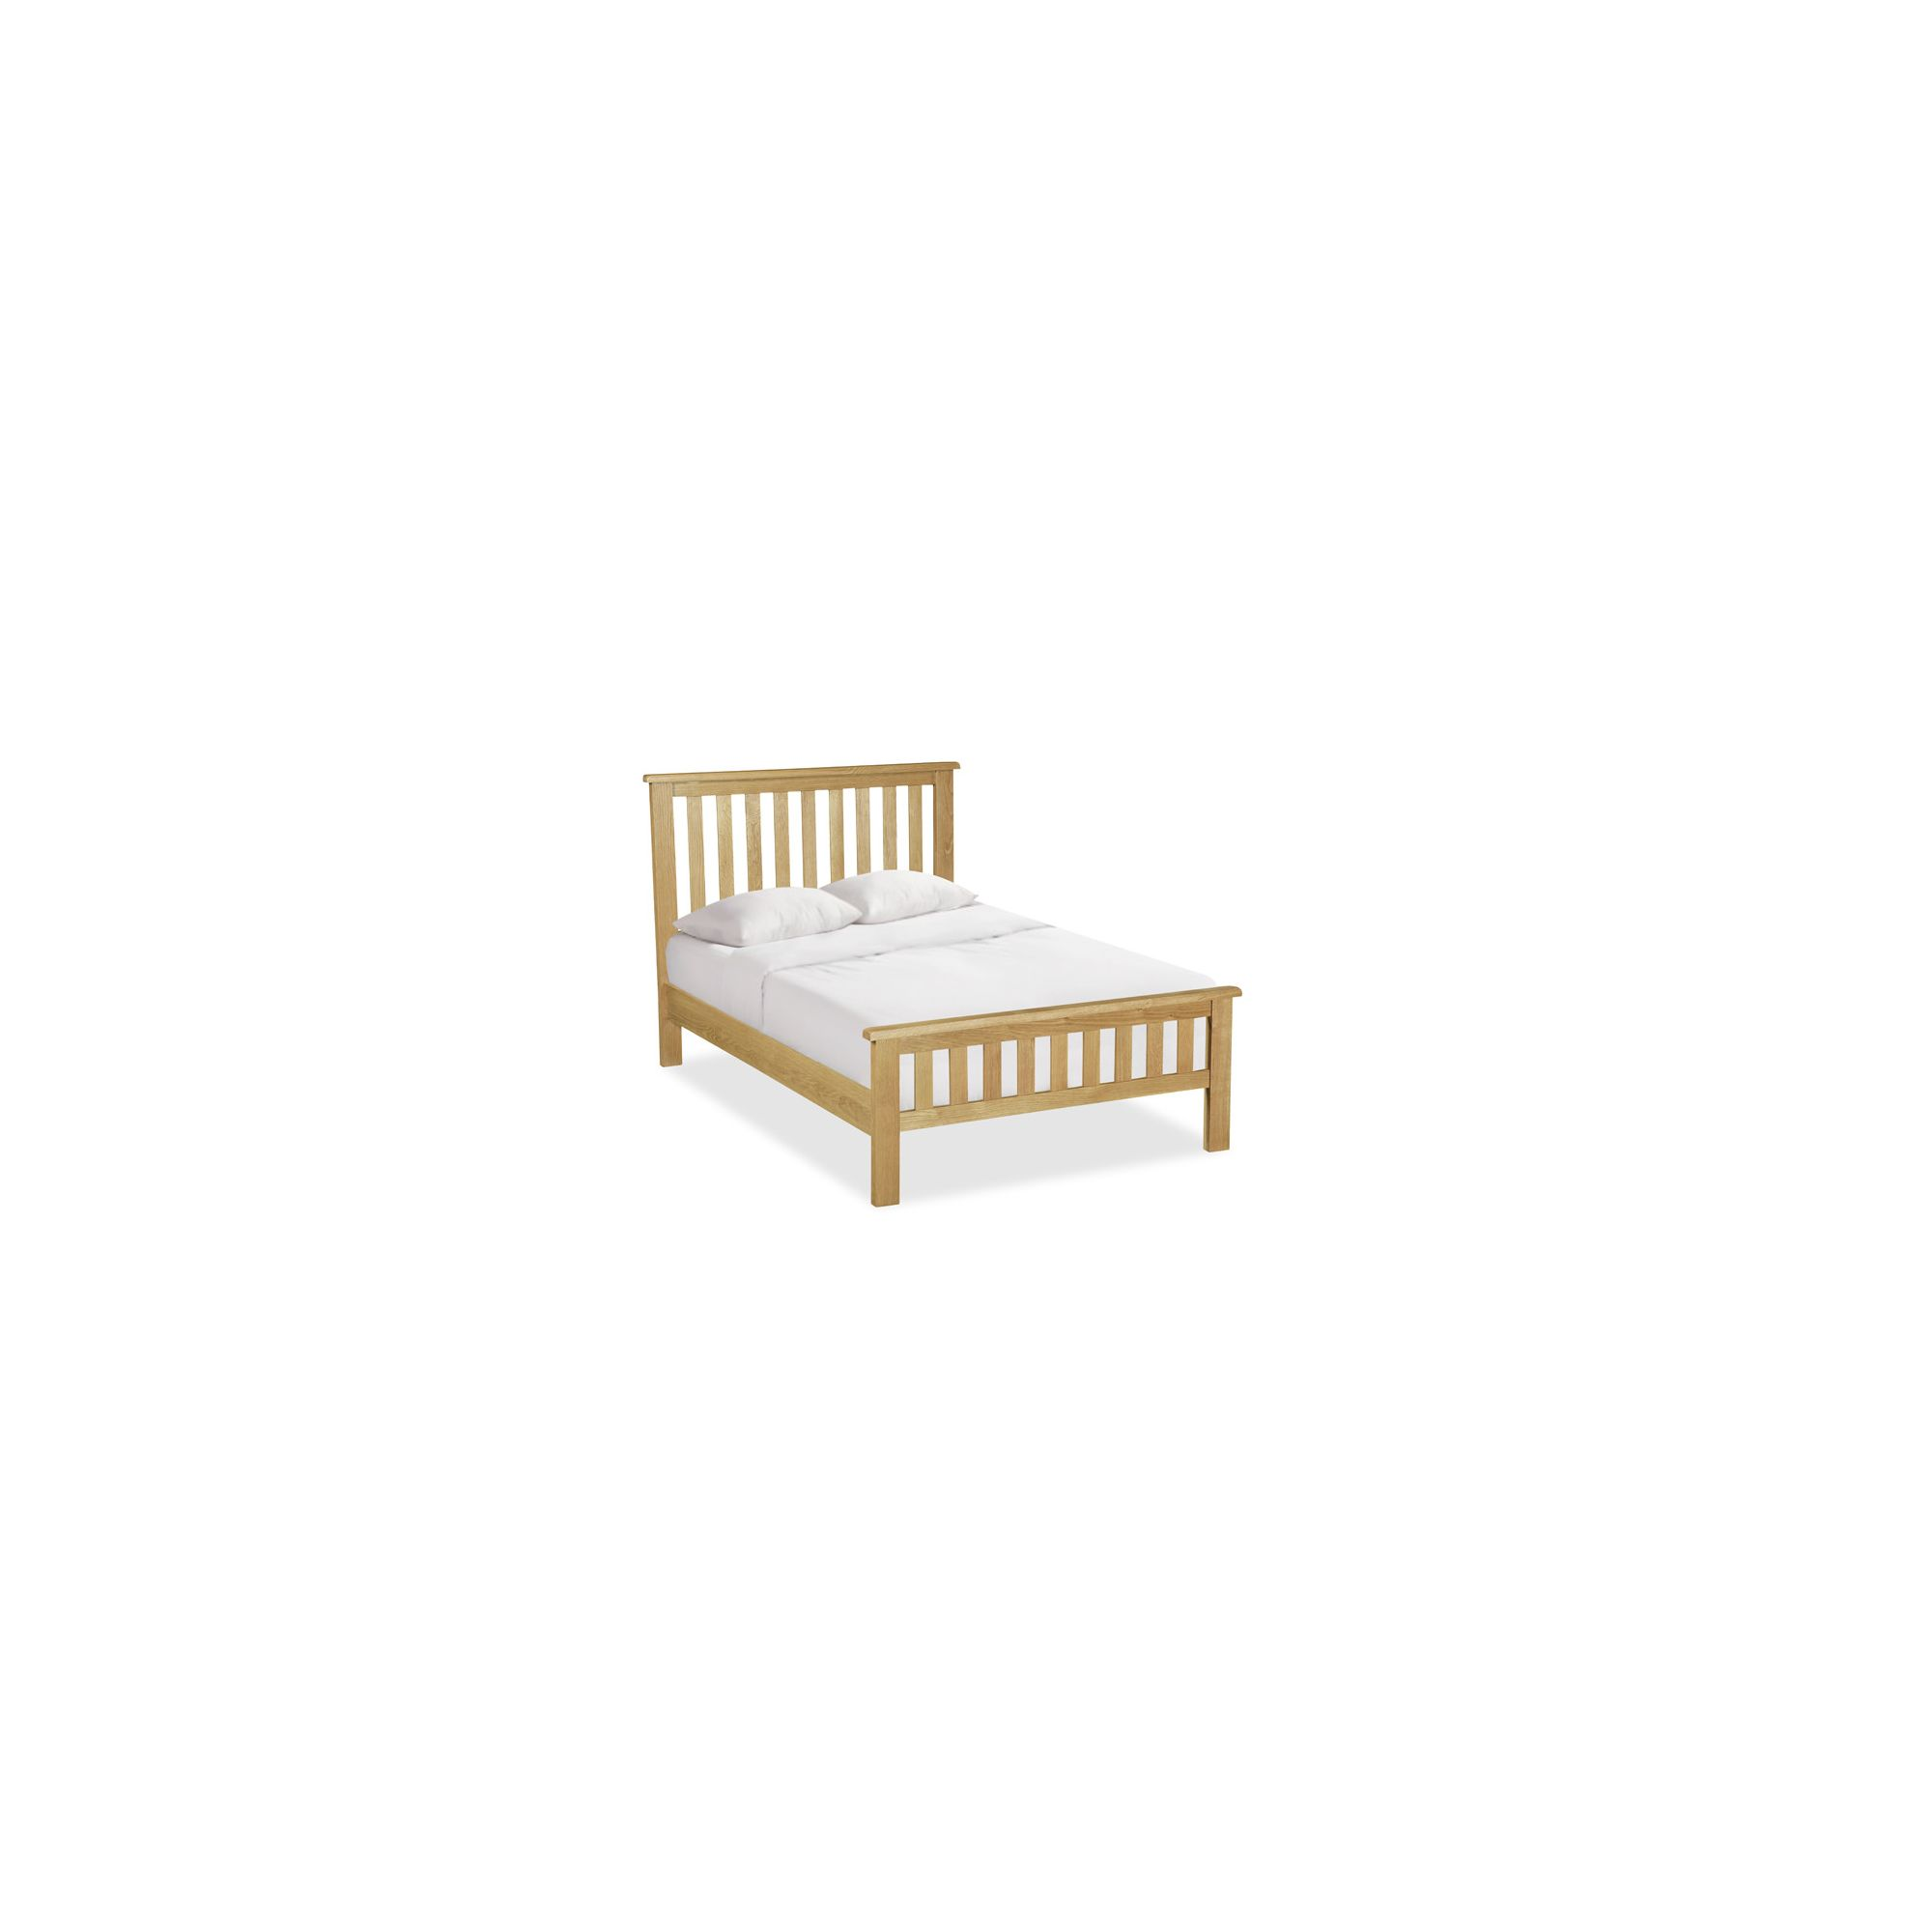 Alterton Furniture Pemberley Petite Slatted Bed - Double at Tesco Direct